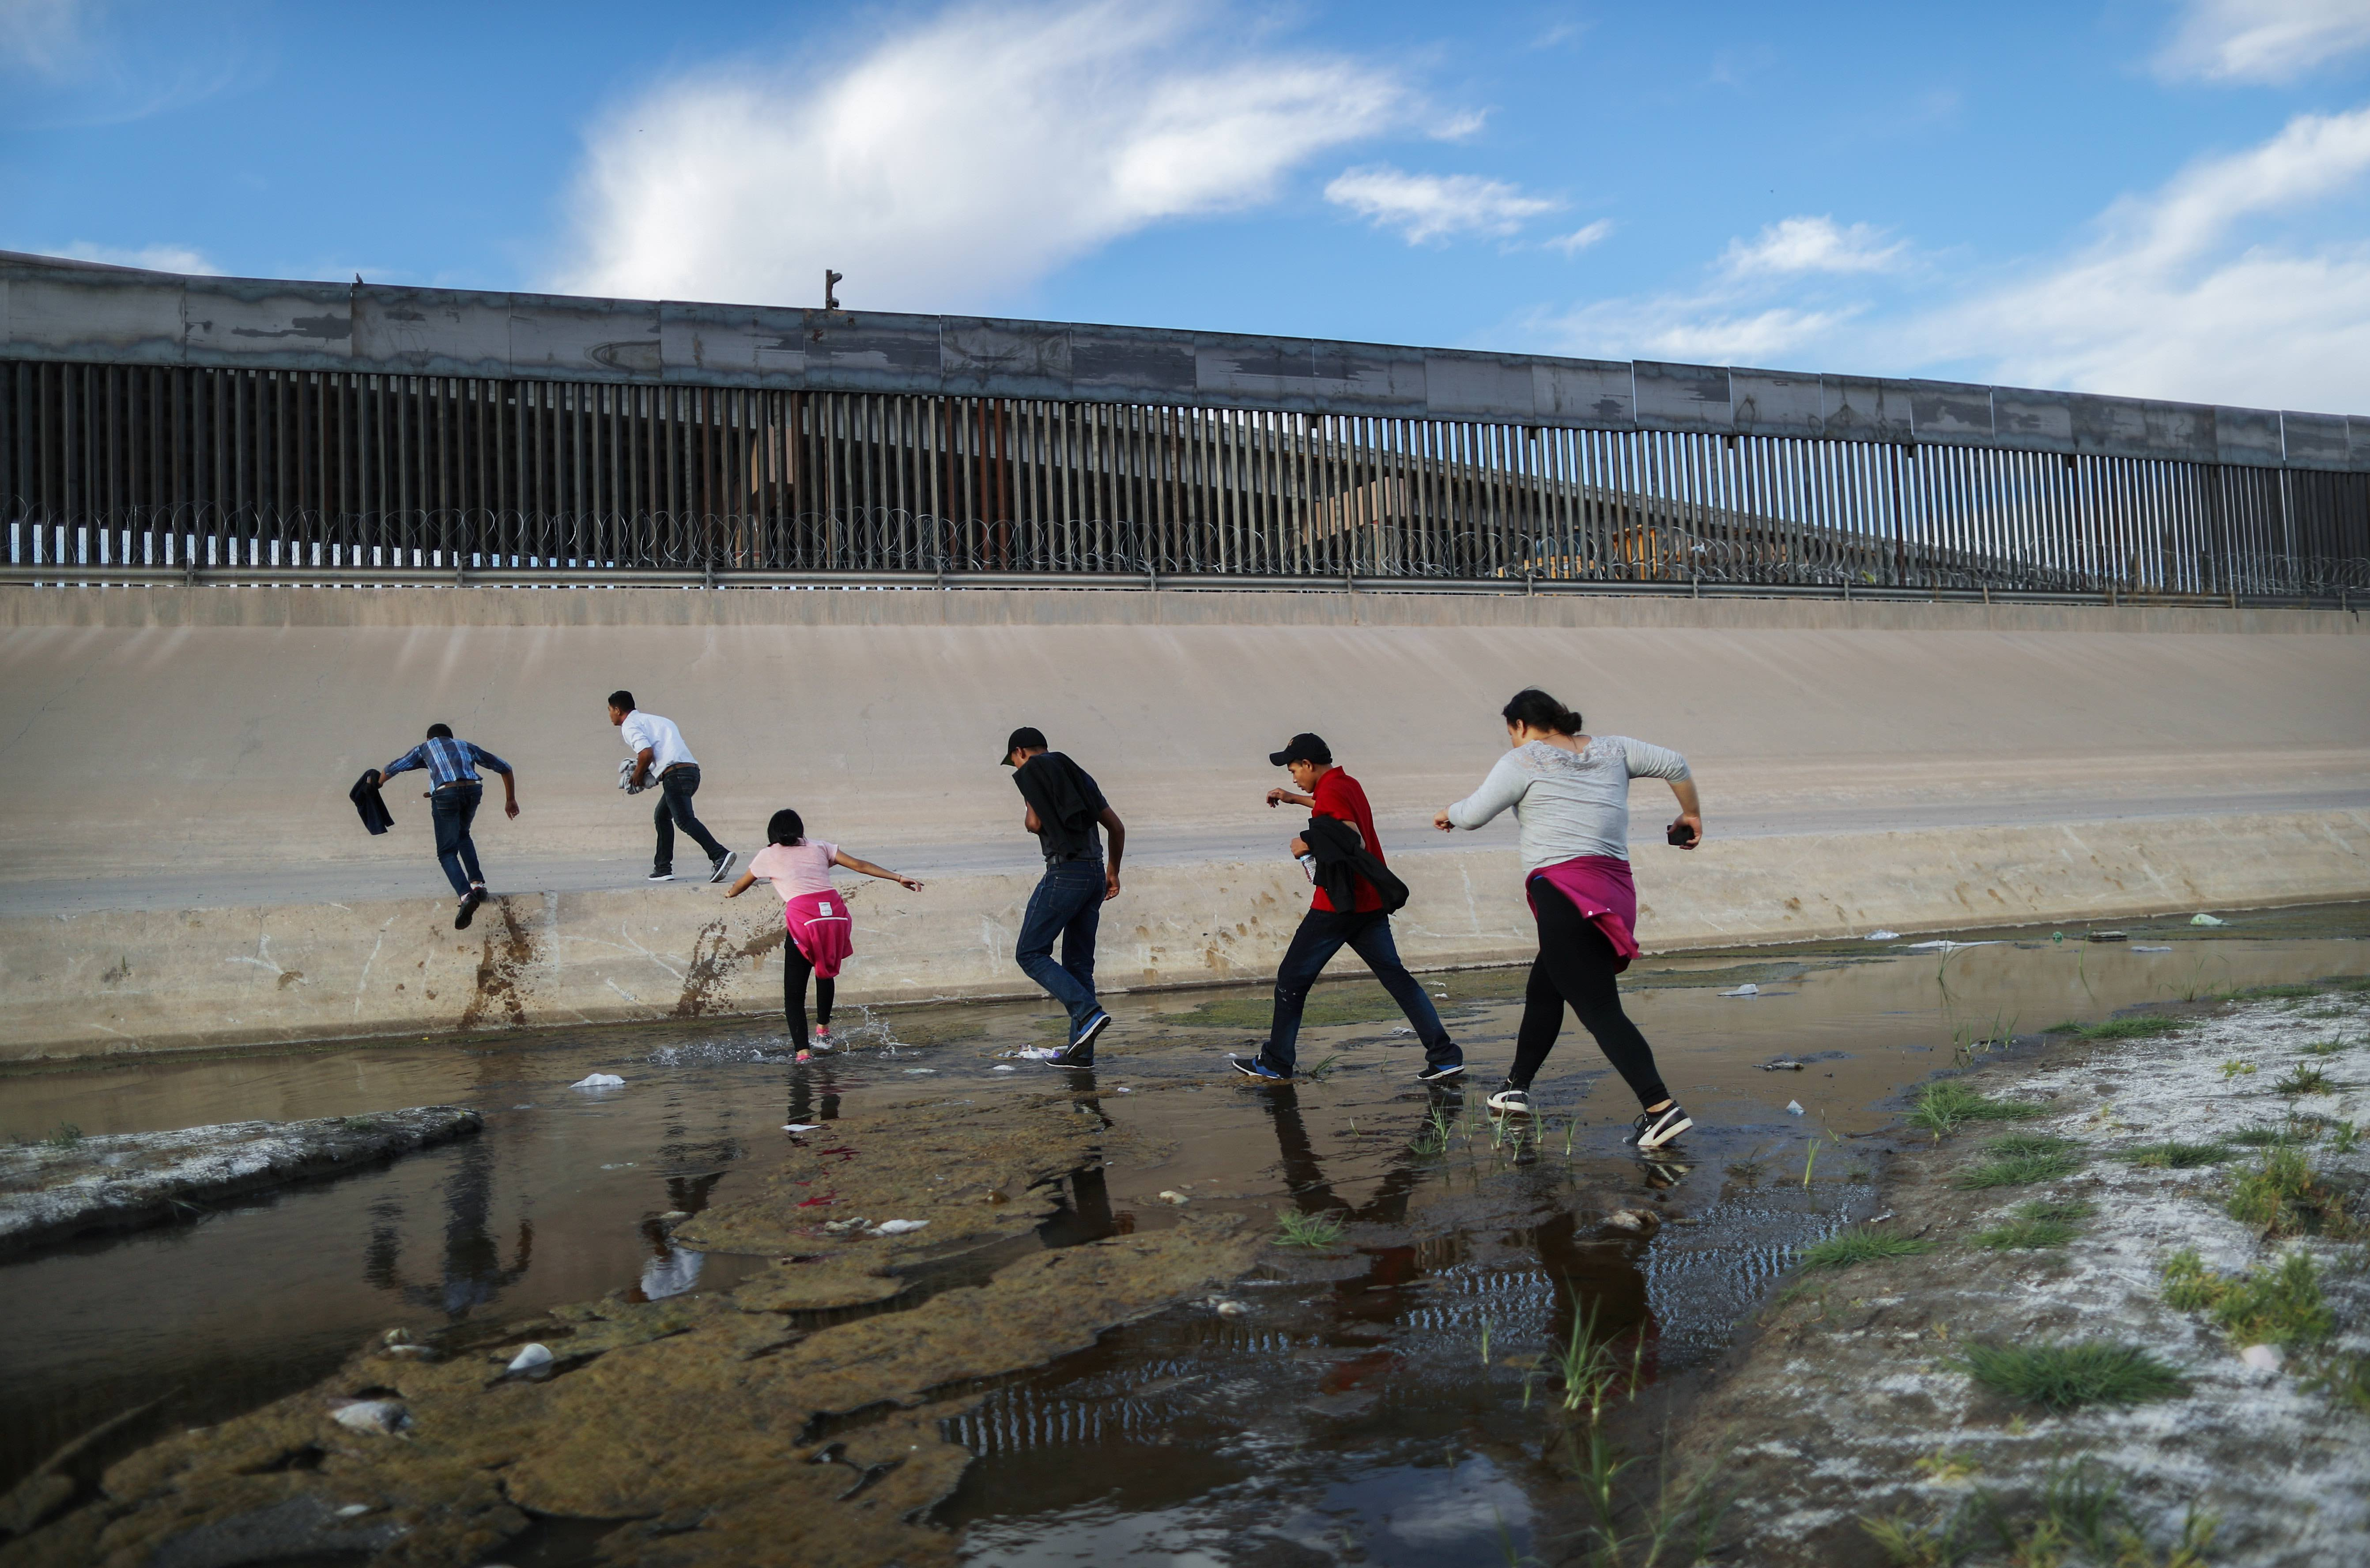 Trump Administration Plans to Collect DNA Samples From Asylum Seekers